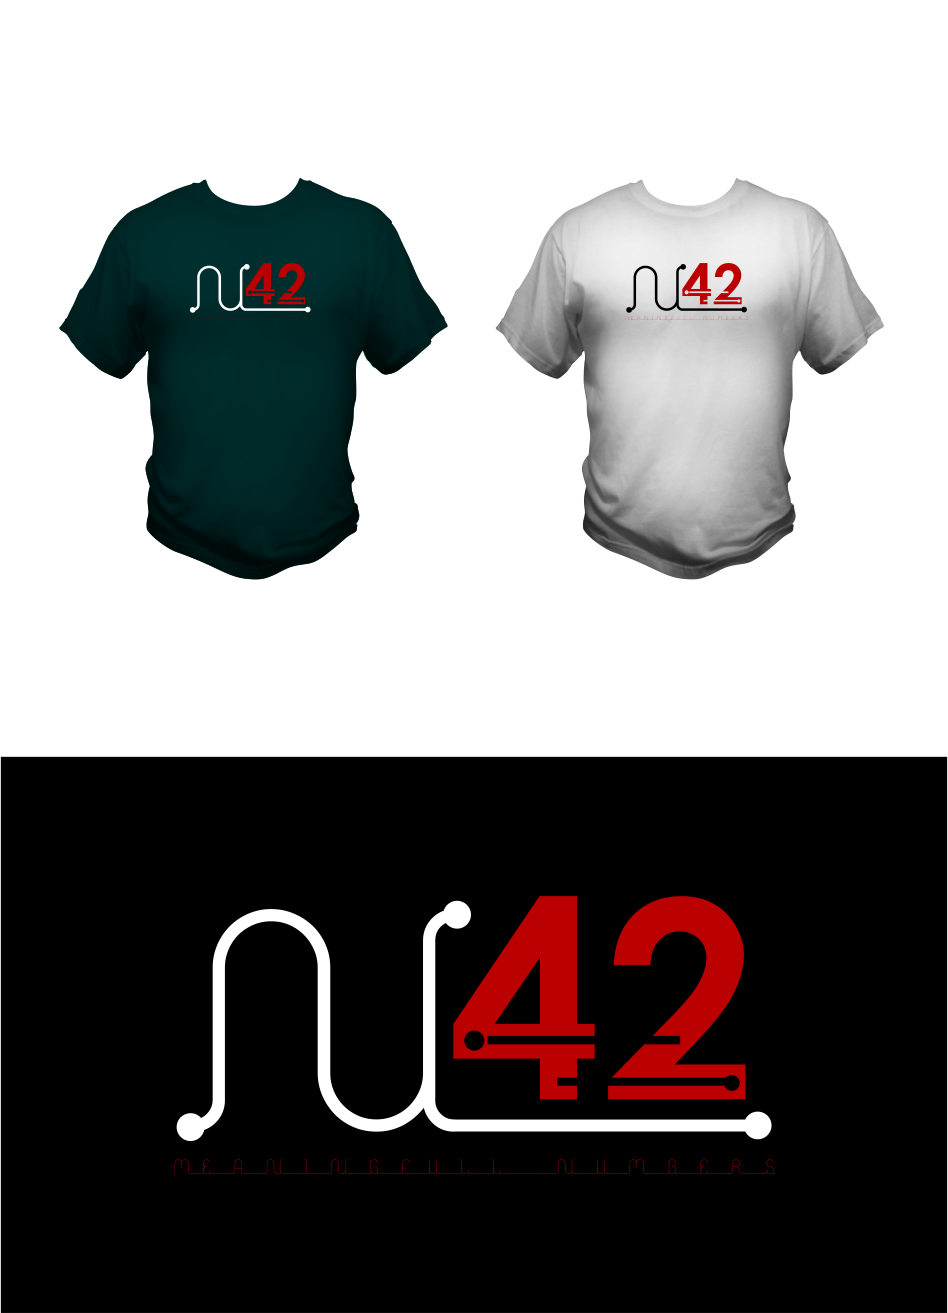 Logo Design by Agus Martoyo - Entry No. 72 in the Logo Design Contest Artistic Logo Design for Number 42.